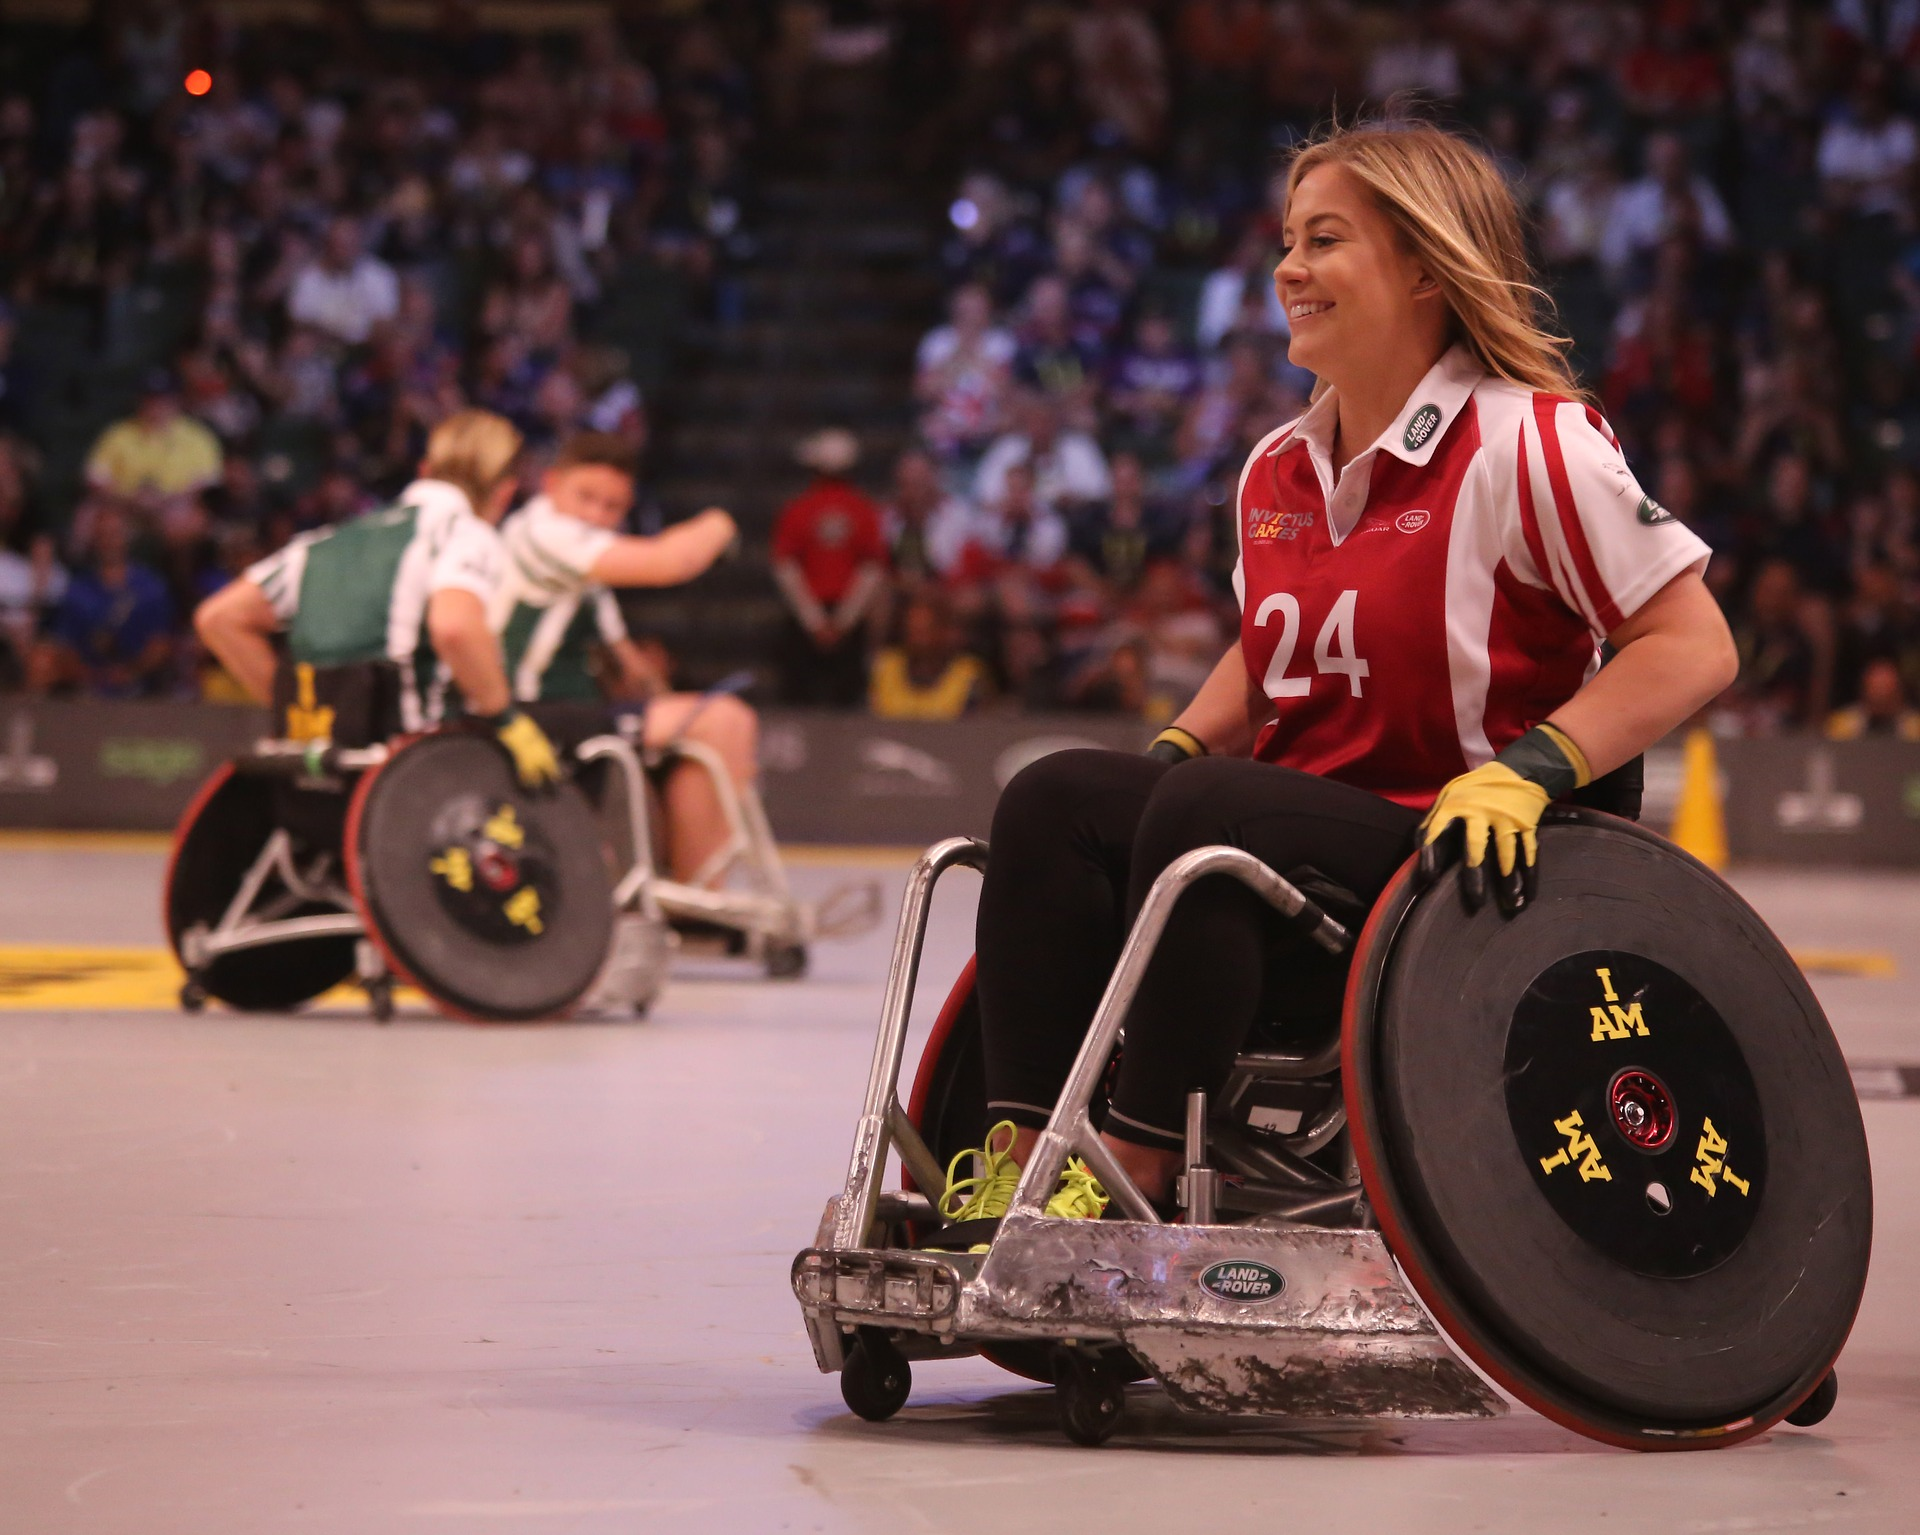 Inter Spinal Unit Games starts today